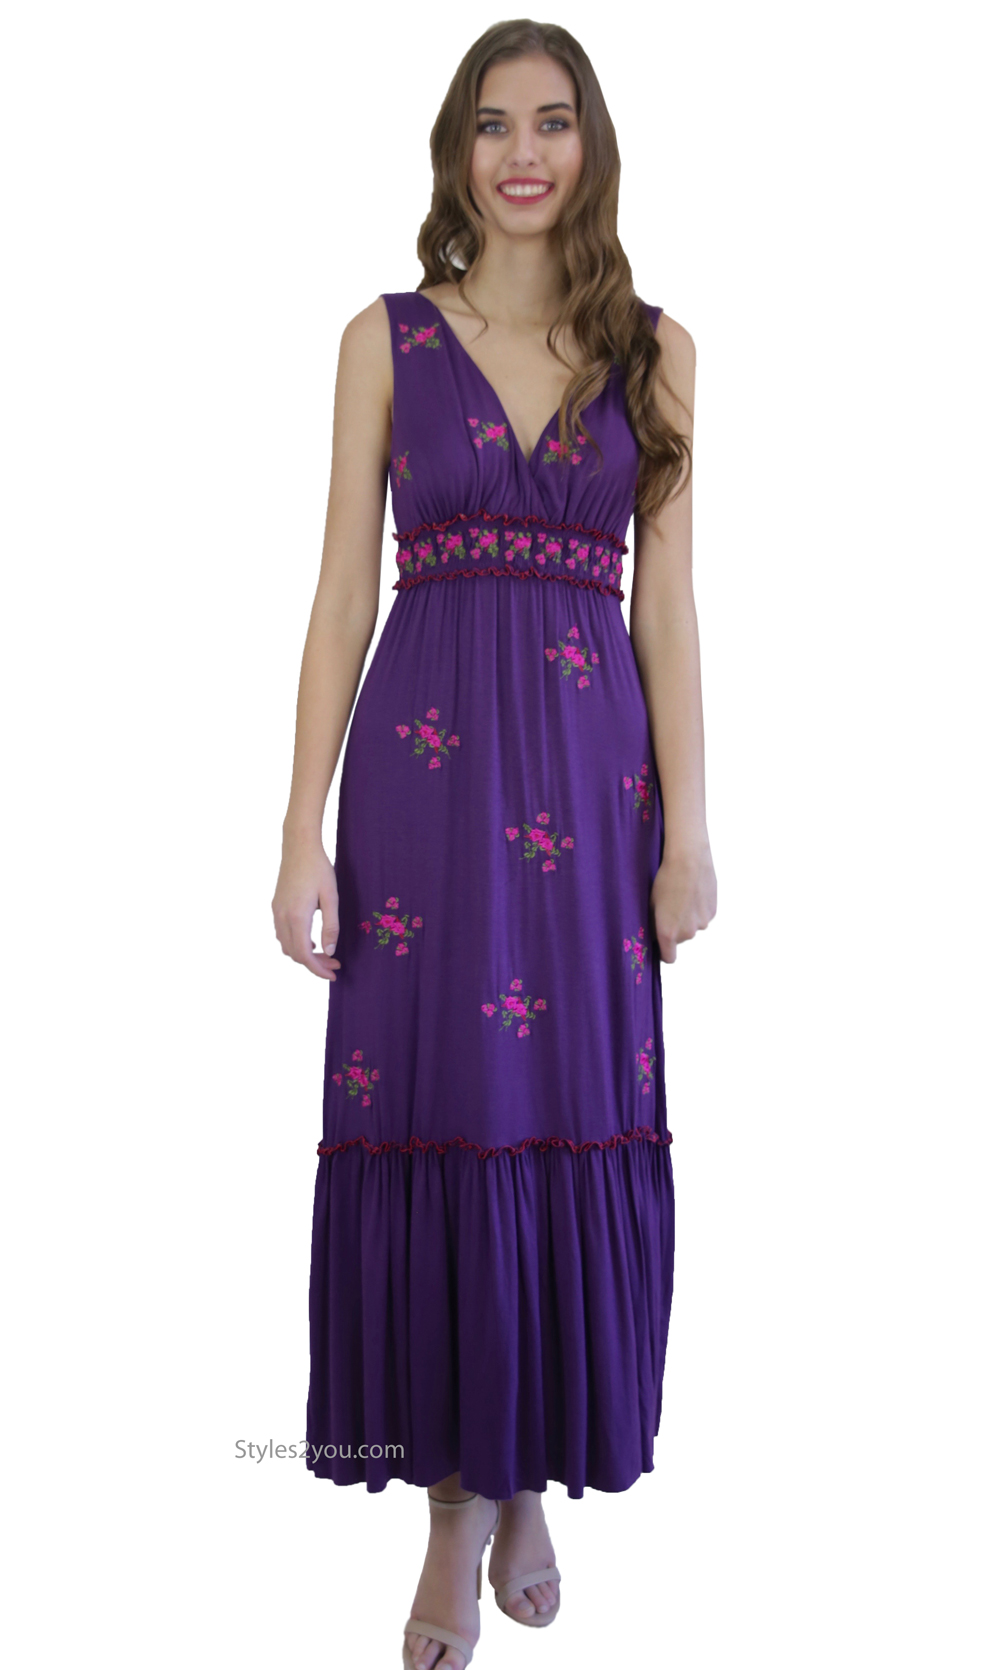 Rosemary Sleeveless Maxi Dress With Embroidered Roses Blue Tassel ...